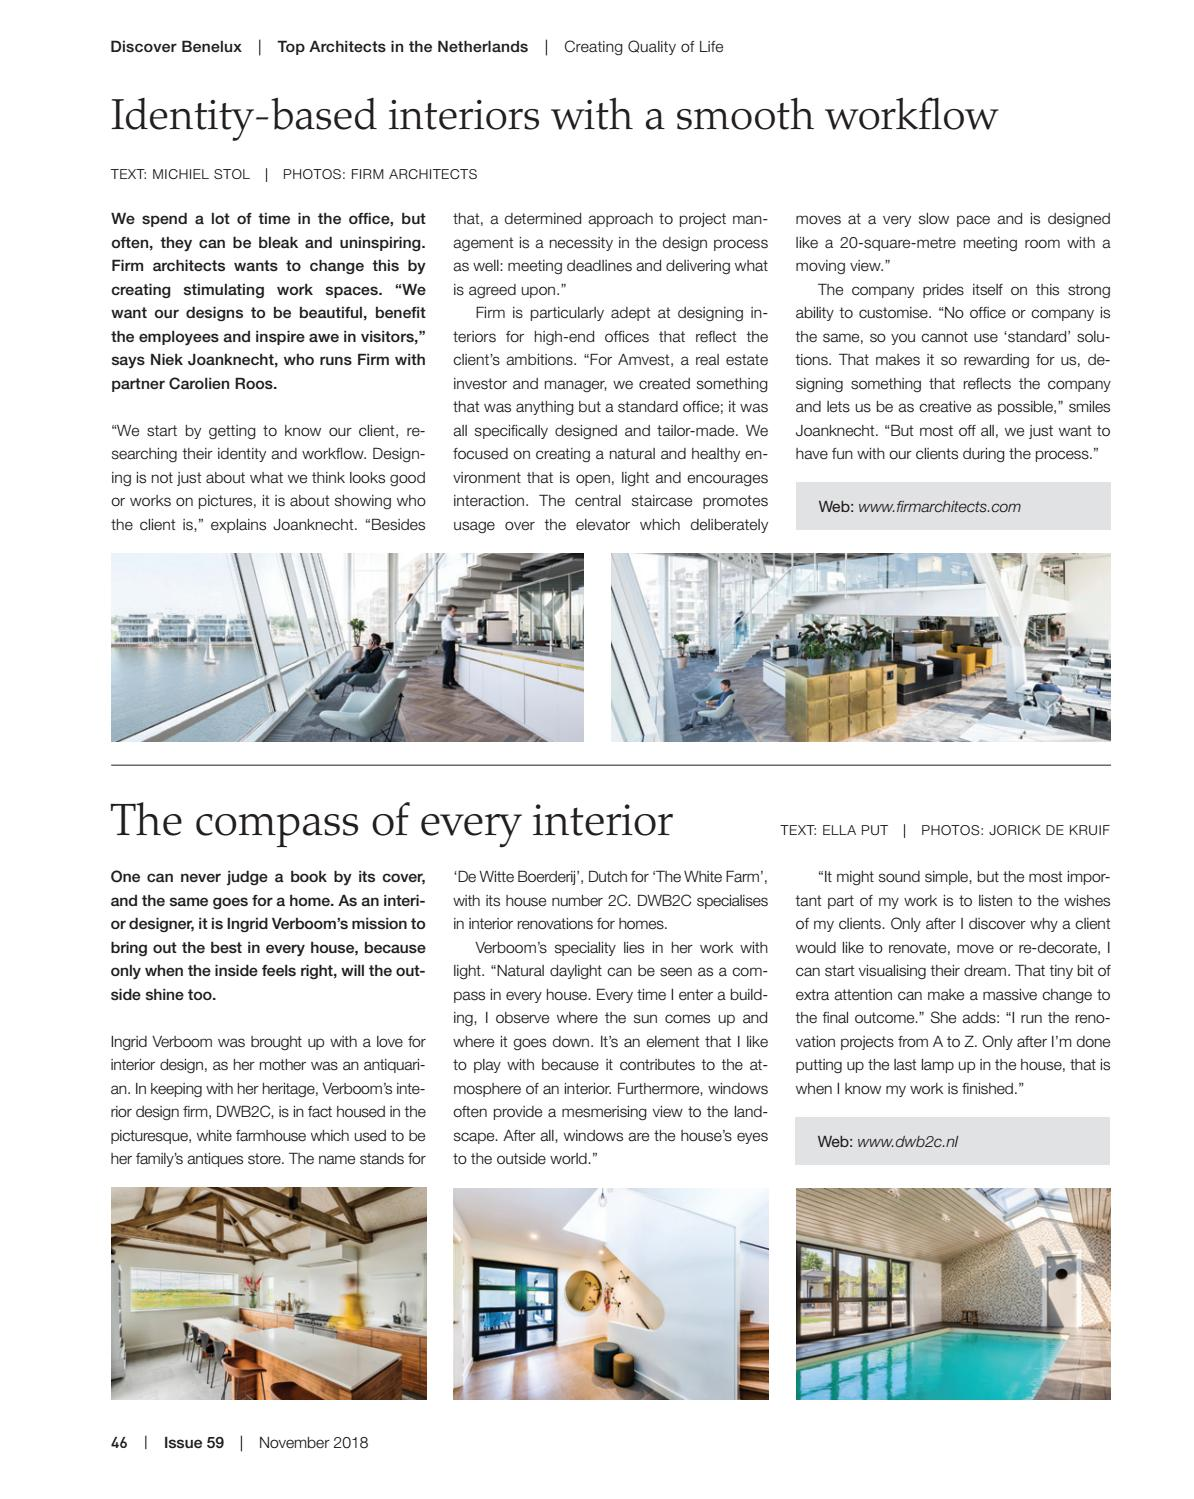 Discover Benelux, Issue 59, November 2018 by Scan Group , issuu